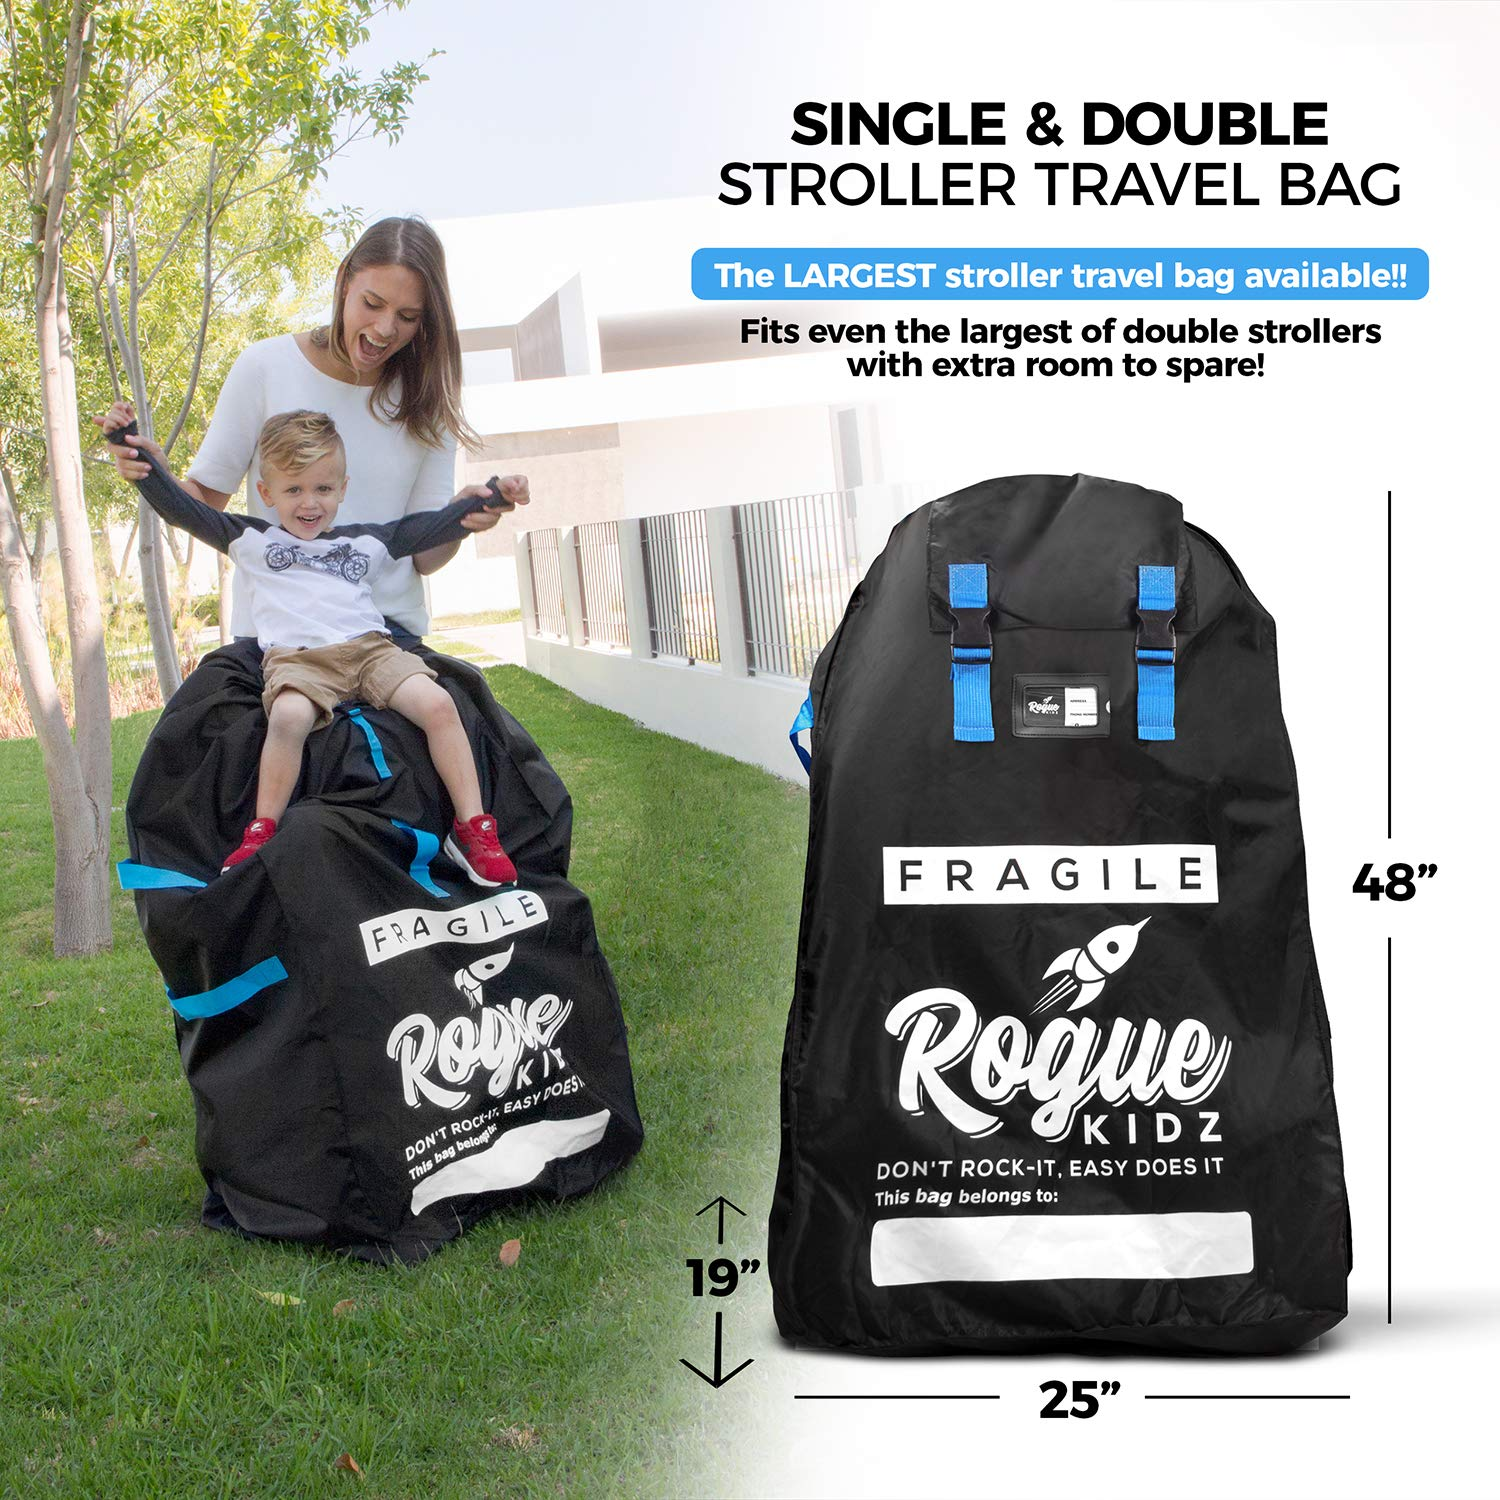 Rogue Kidz Single and Double Stroller Travel Bag For Airplane Gate Check - Durable Universal Large XL Cover With Padded Backpack Straps- Waterproof Heavy Duty Nylon Traveling Protector With Carry Case by Rogue Kidz (Image #2)